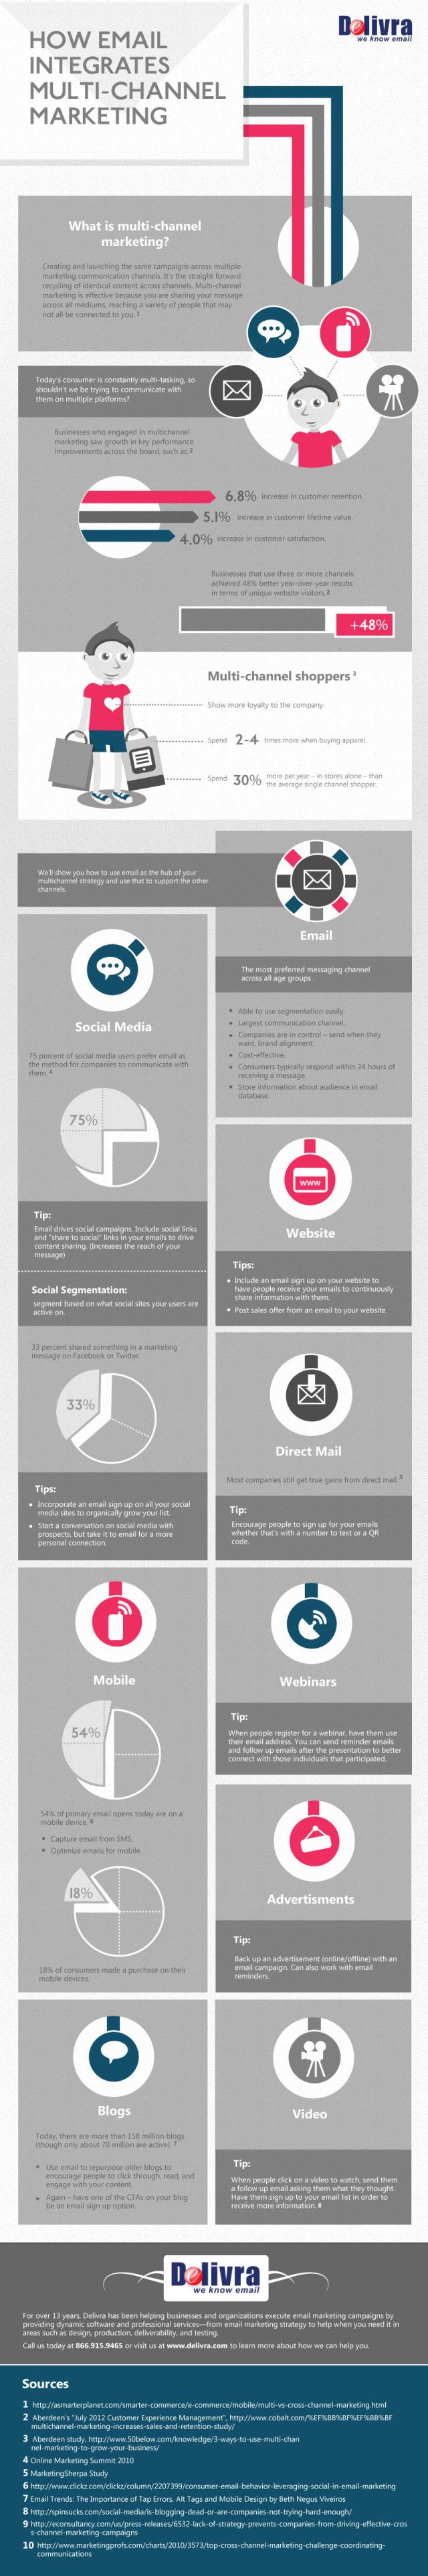 #Email #Marketing: How Email Integrates Multi-Channel Marketing #Infographic